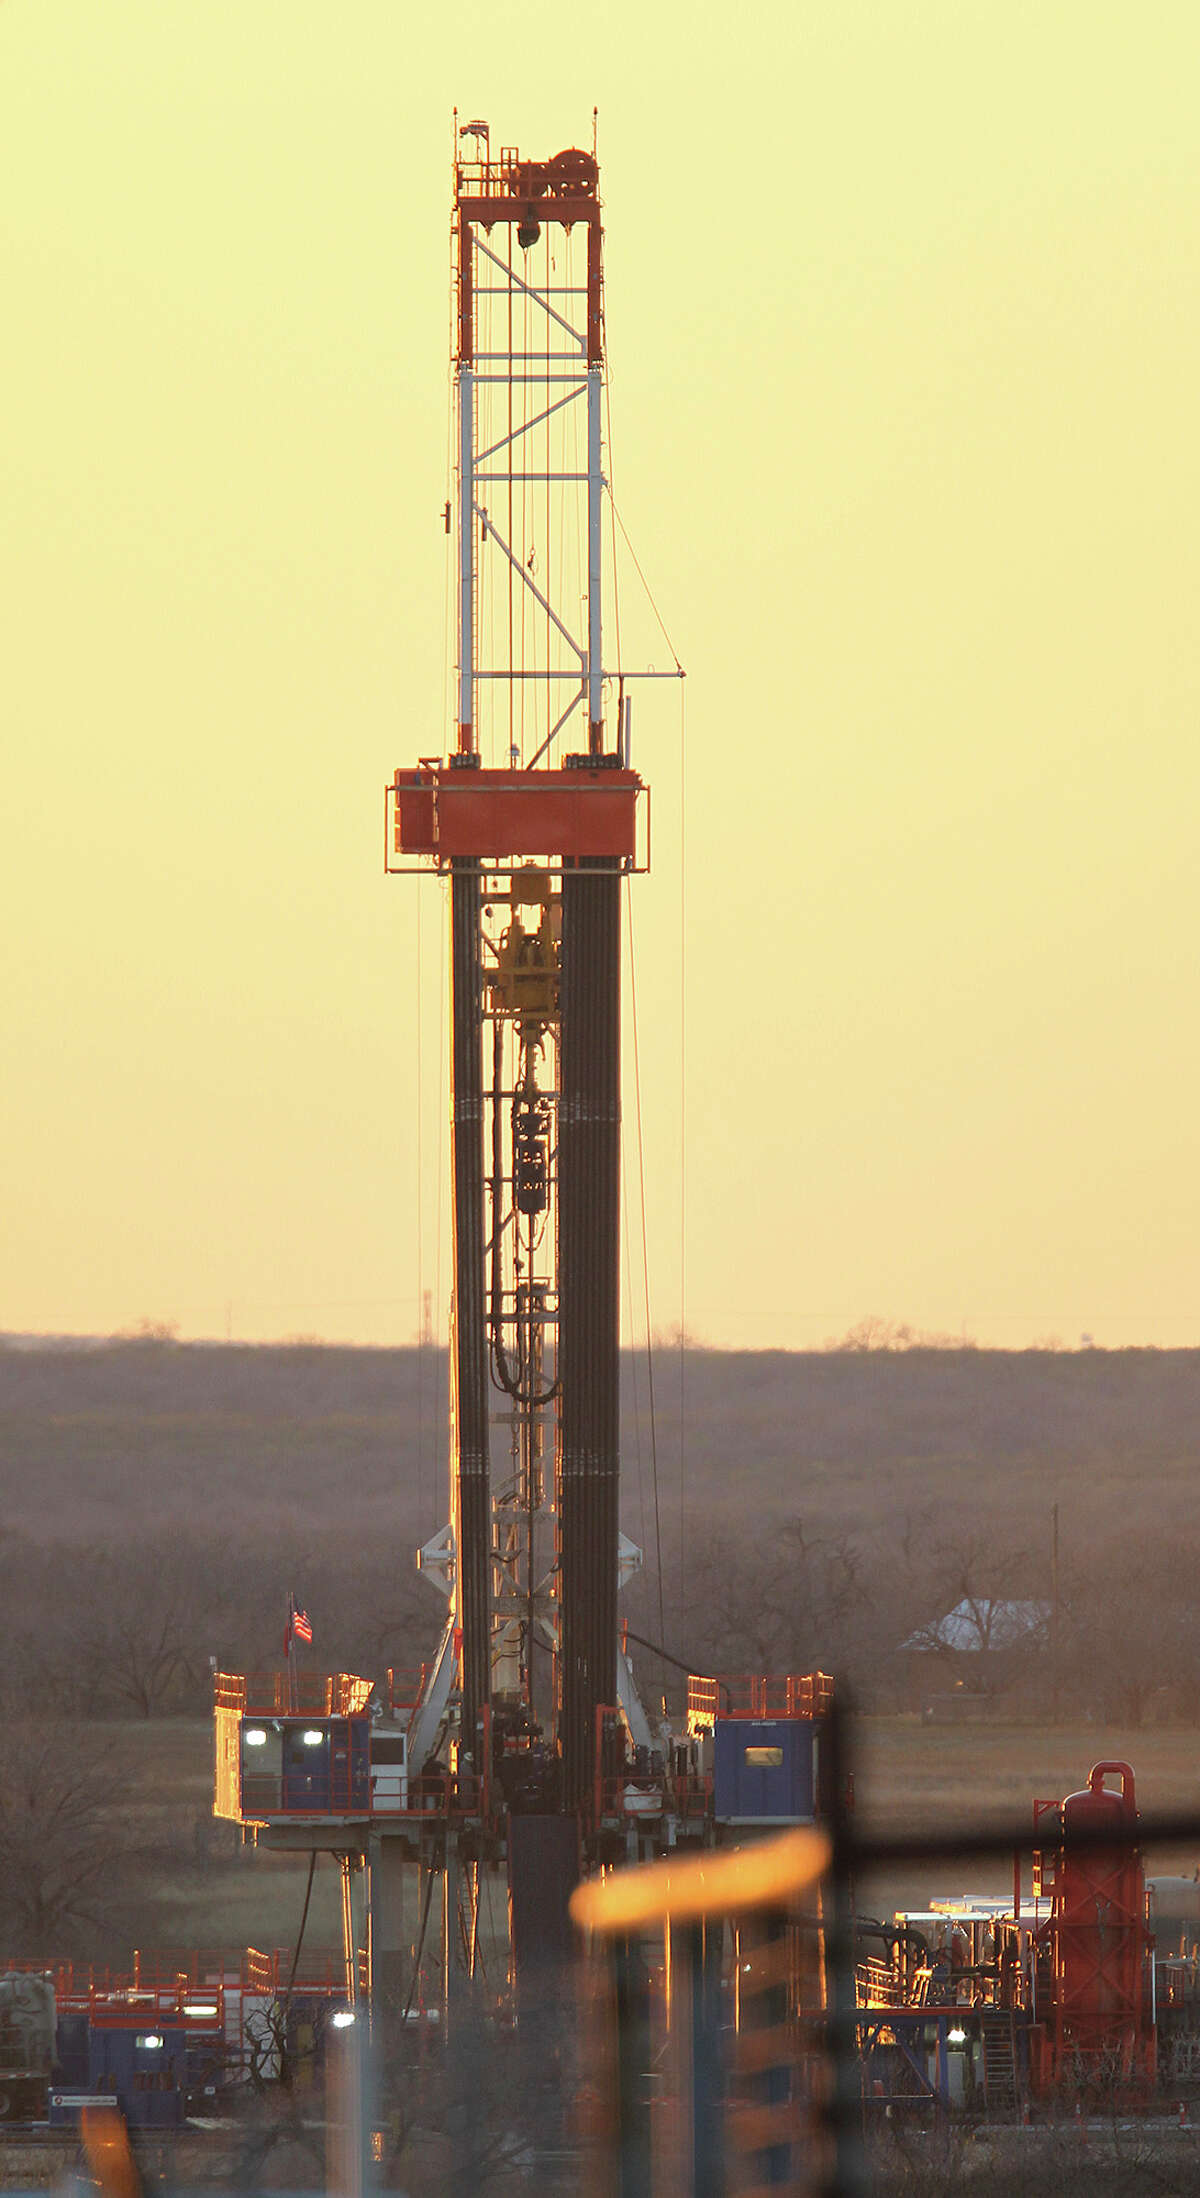 Drilling continues at a Patterson-UTI Energy Rig 248 on FM 99 in Live Oak County near Whisett, Texas, Wednesday, Feb. 13, 2013.